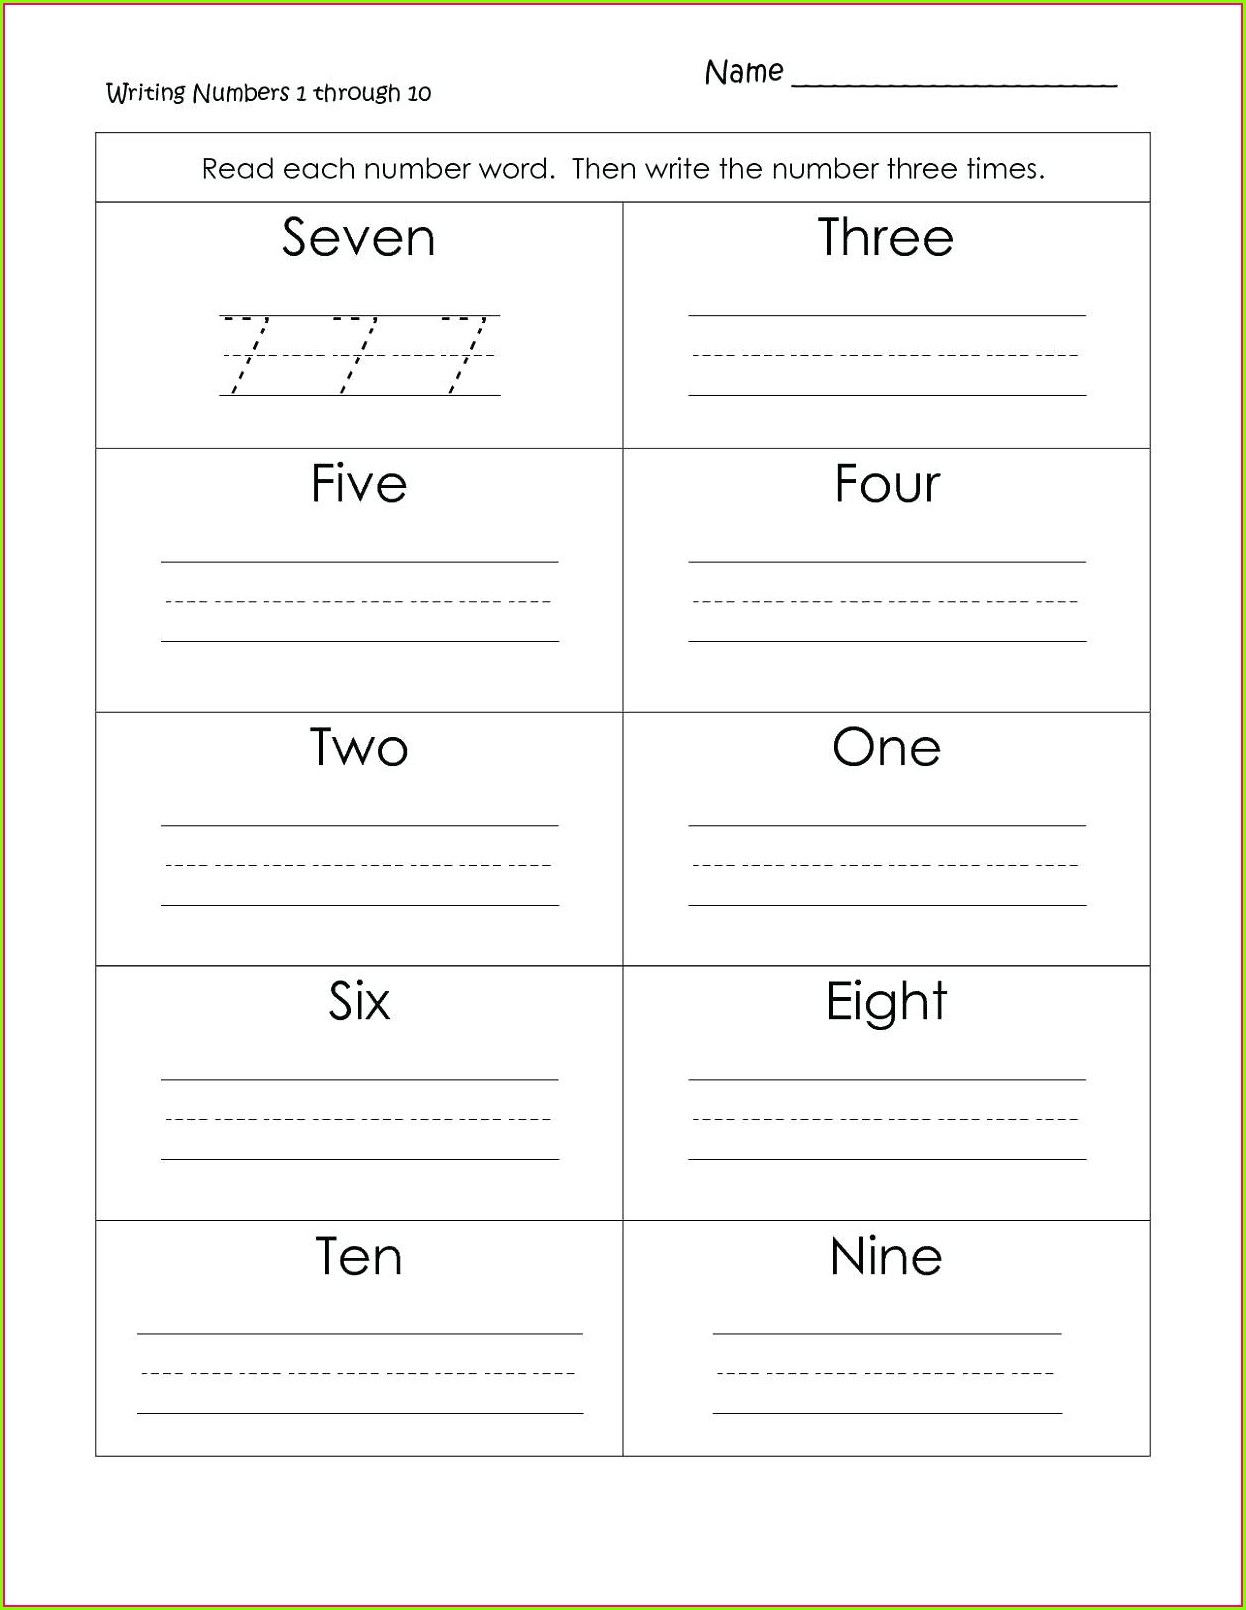 Sentences Writing Worksheets For 3rd Grade